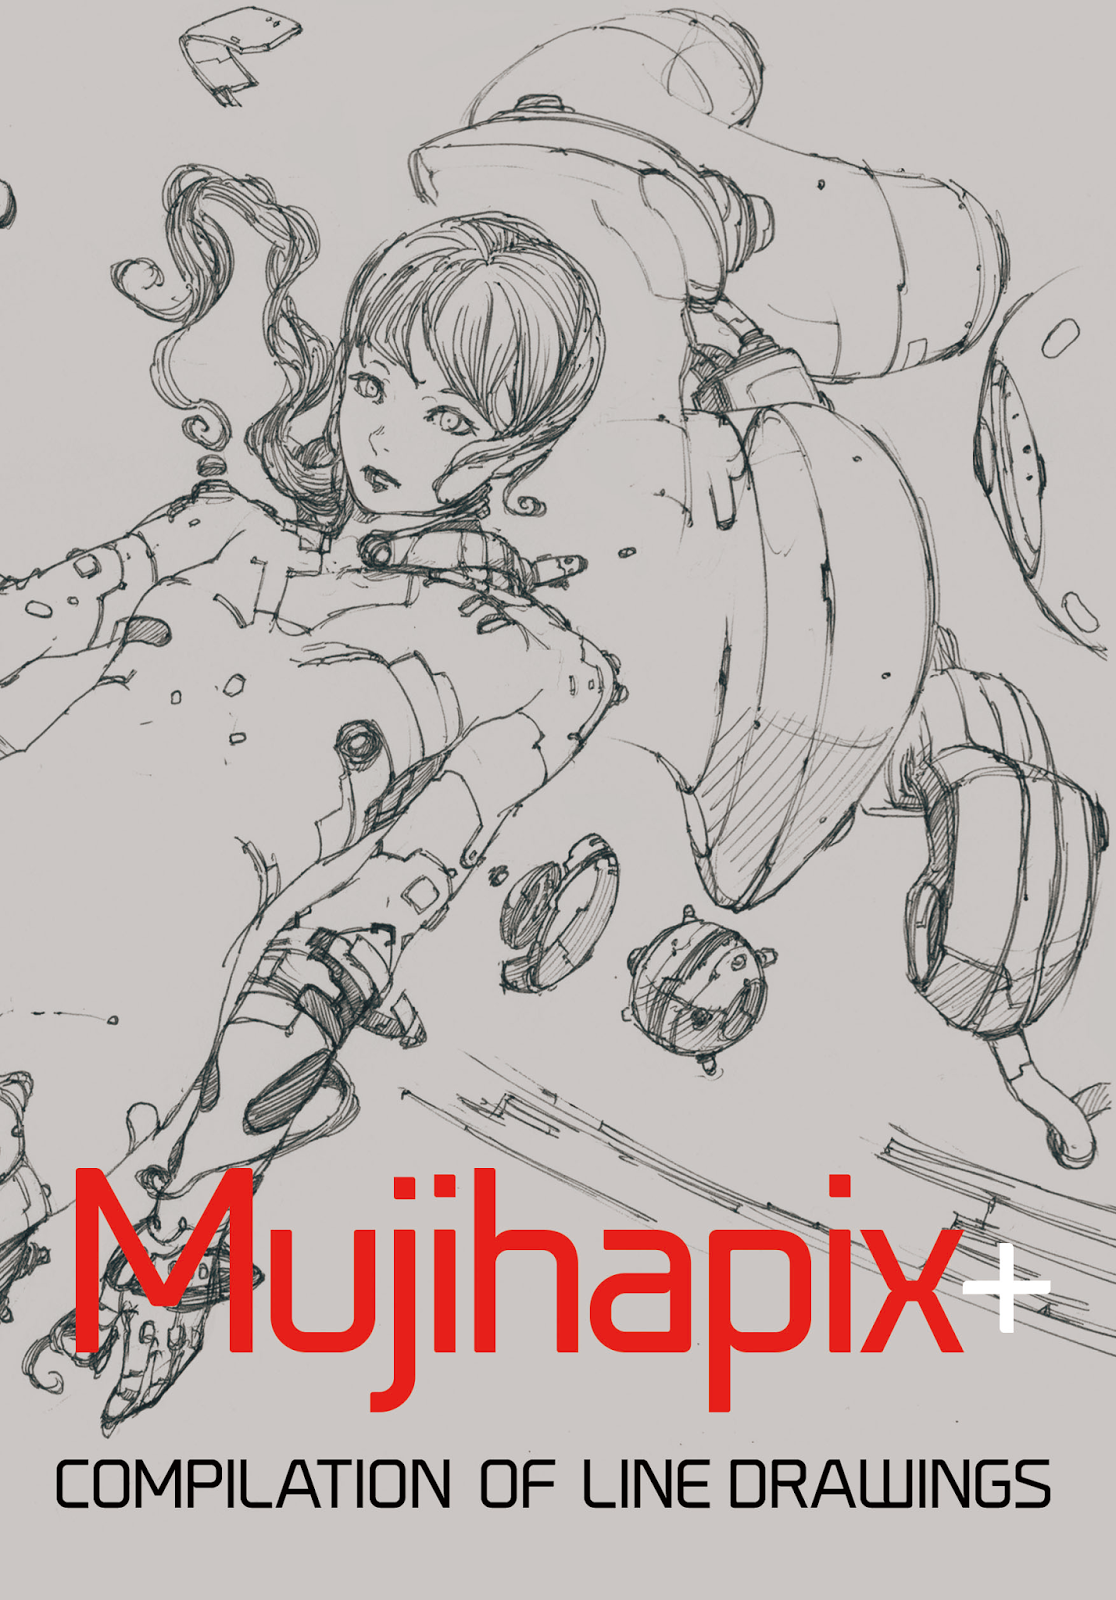 Mujihapix+